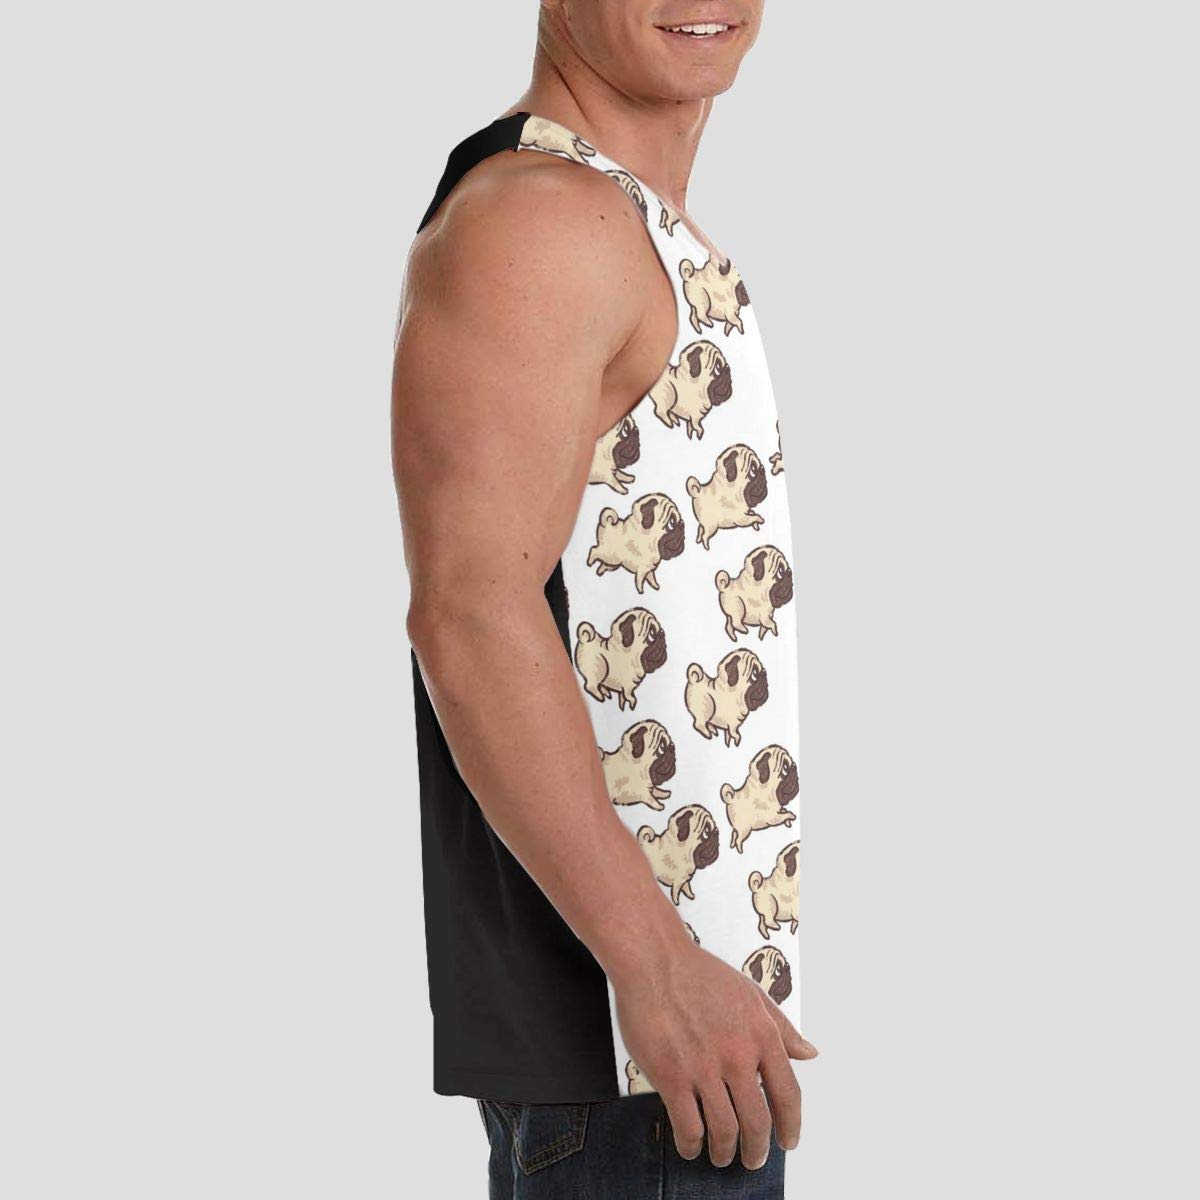 Premium Fitted T-Shirts Hip Pop Vest T-Shirts for Youth /& Adult Men Boys